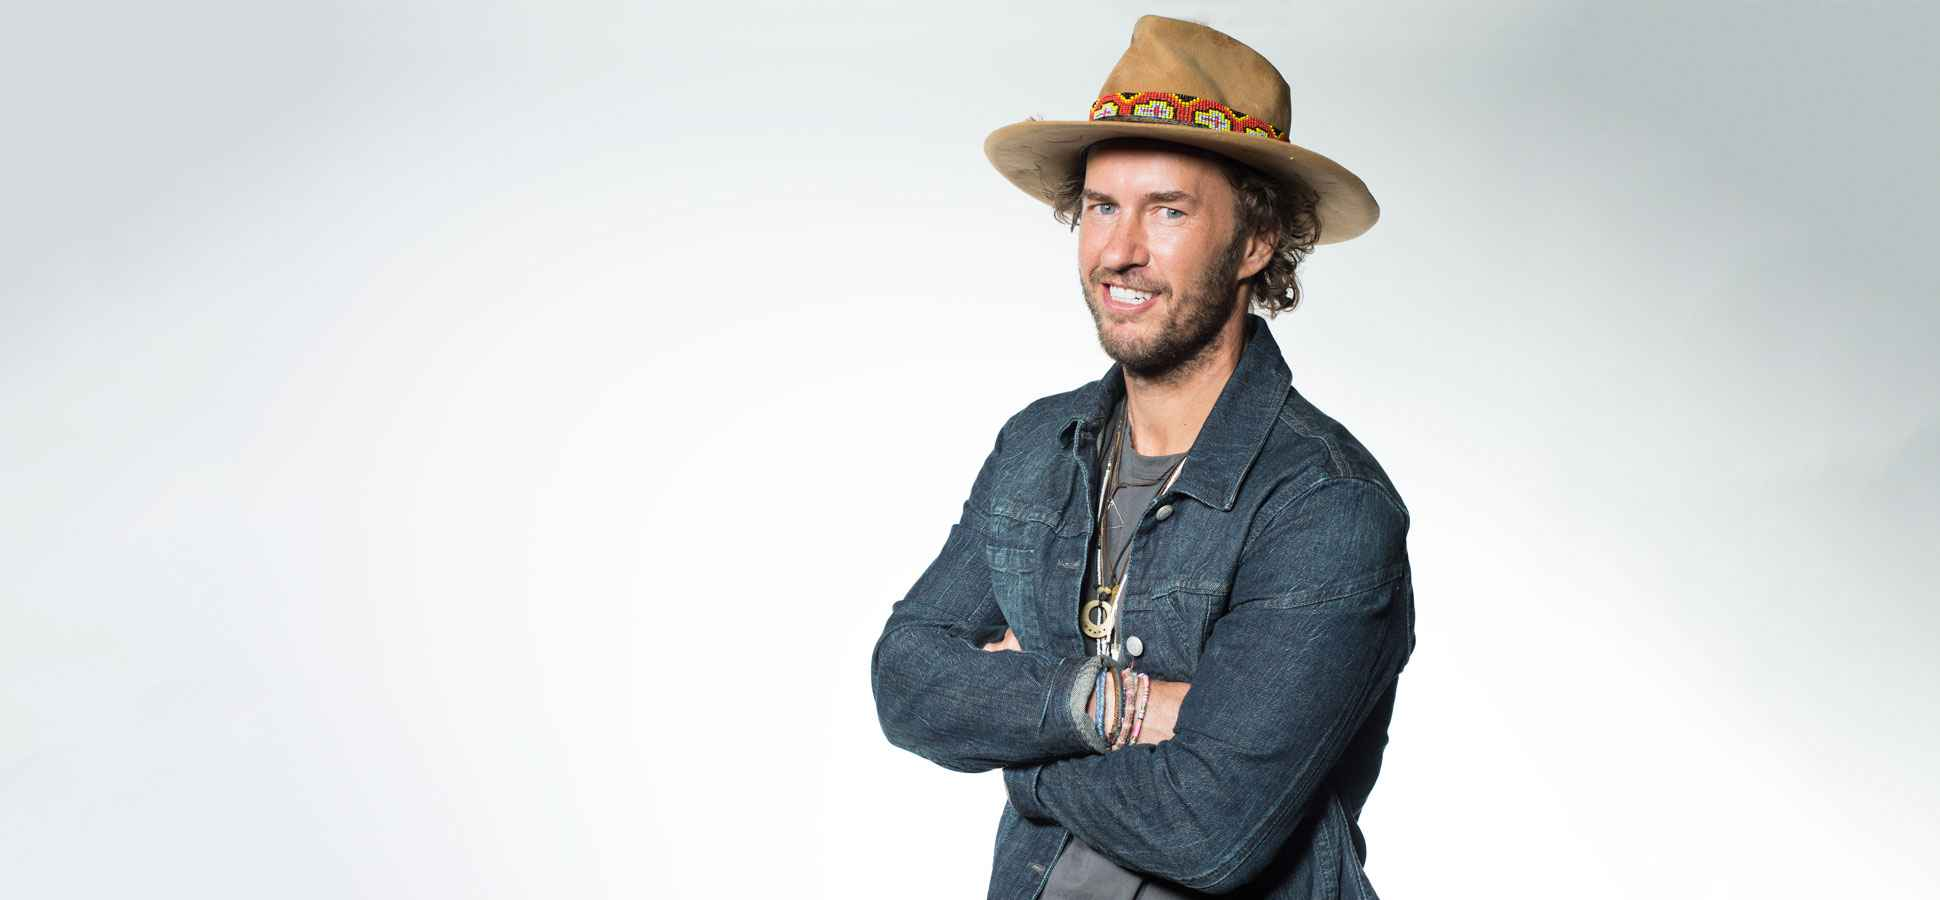 Blake Mycoskie - The TOMS founder teaches Cal: The More You Give The More You Live